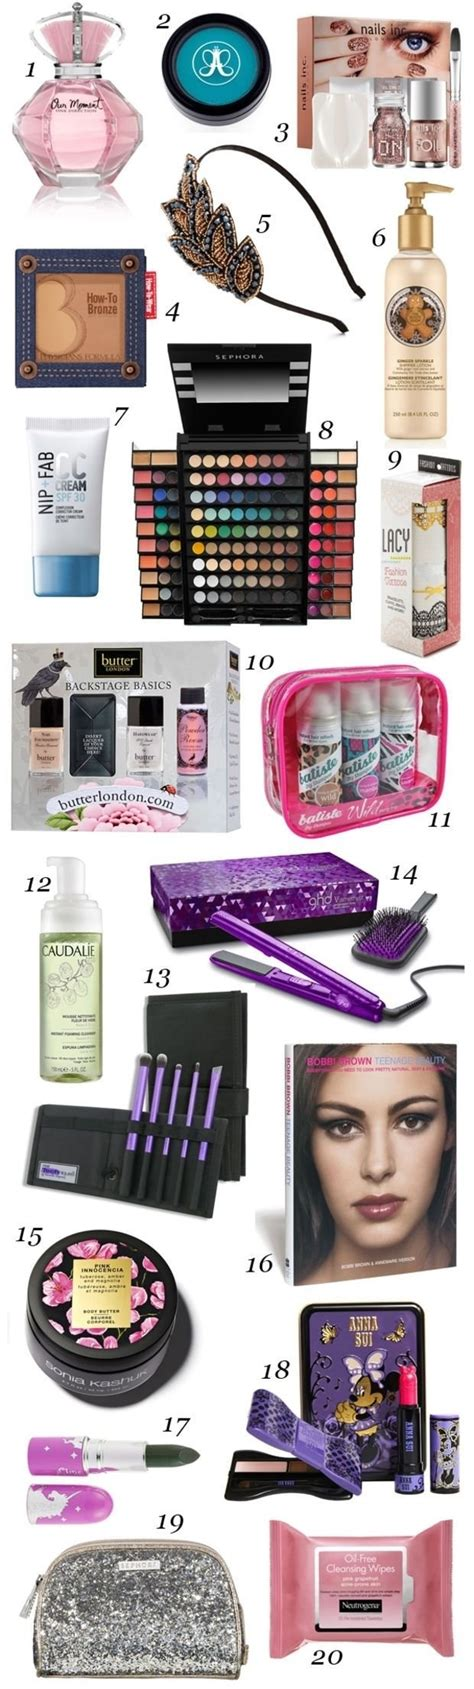 christmas gifts for 20 year old female svoboda2 com